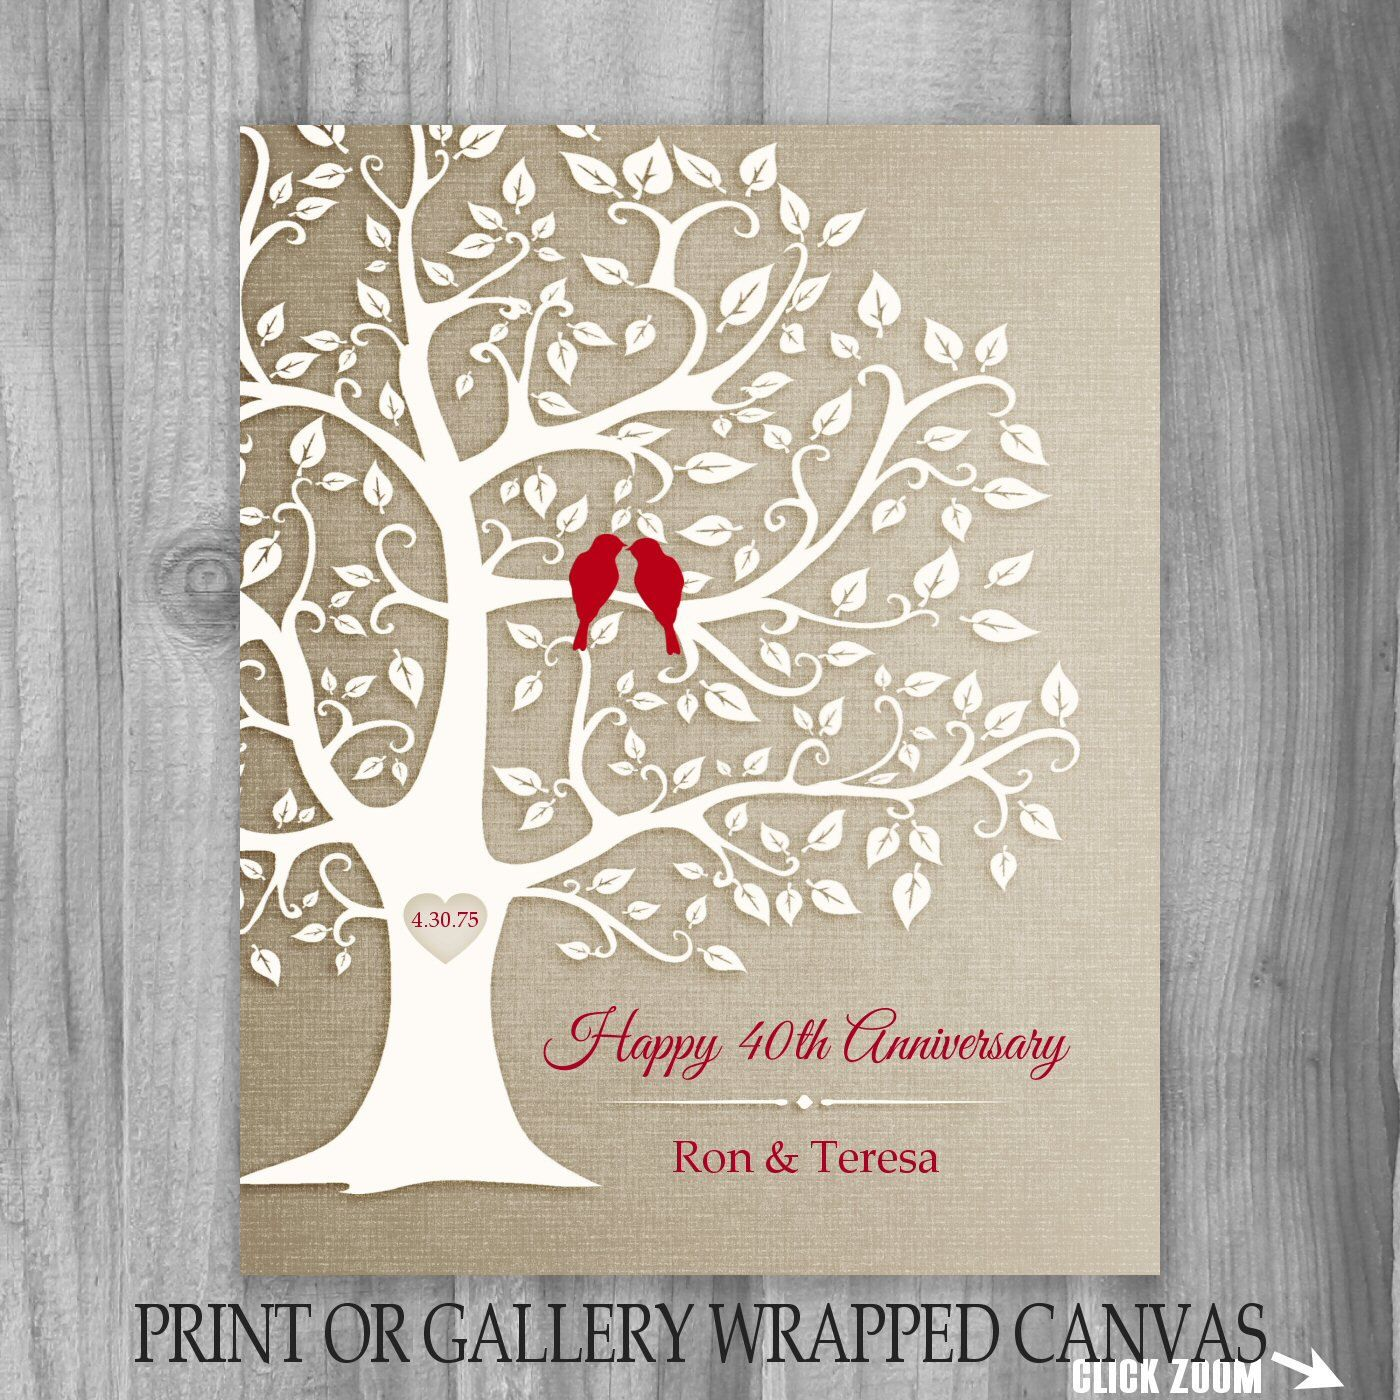 40th Wedding Anniversary Gifts For Parents Ideas: Pin By Dizzie Sim On WEDDINGS